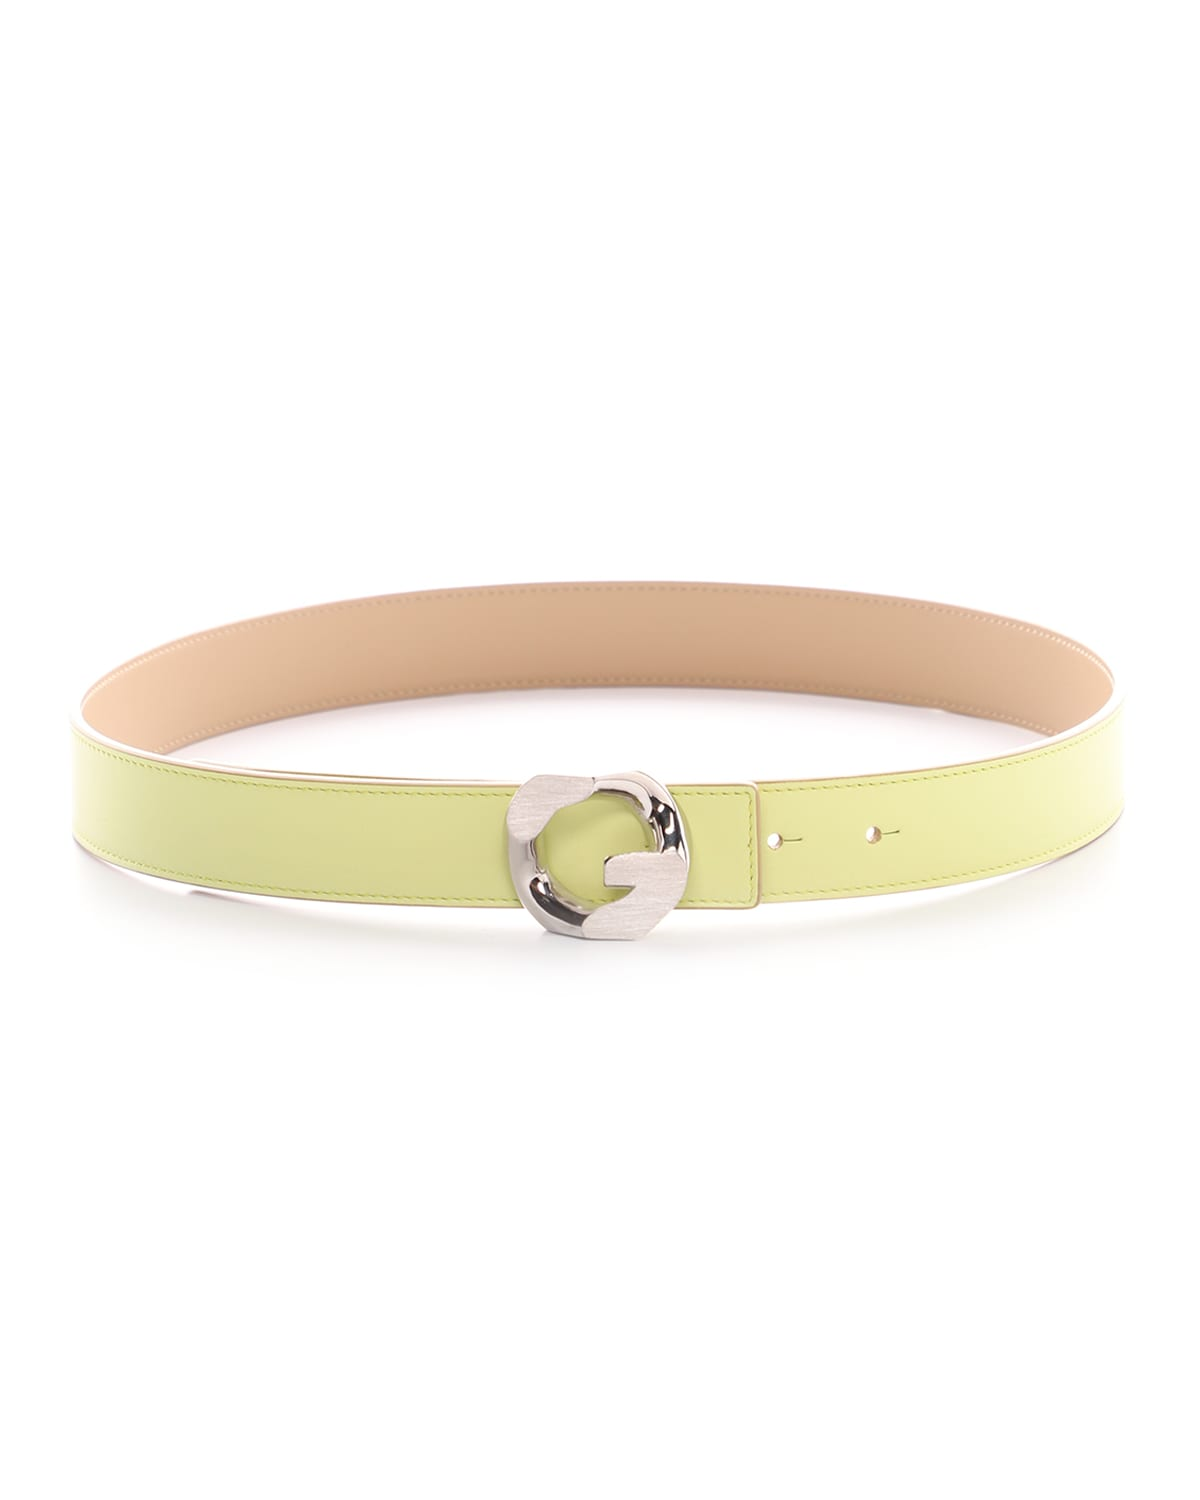 30mm G Chain Reversible Leather Belt